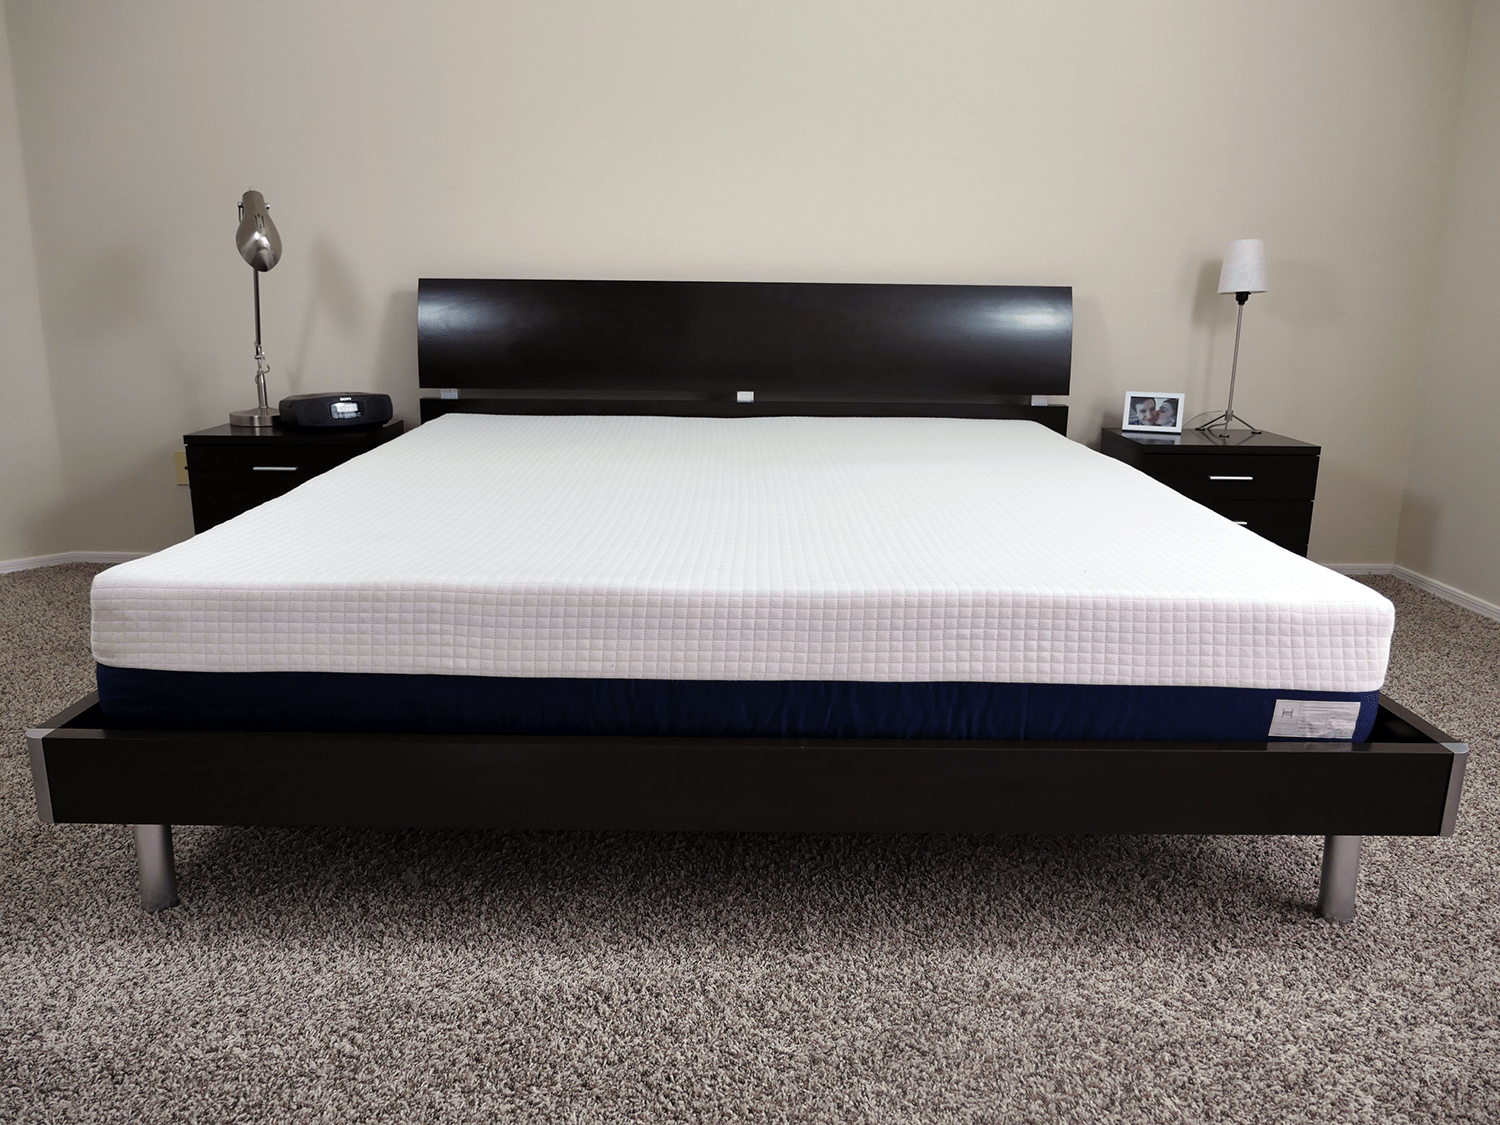 Brooklyn Bedding Vs Tempurpedic Helix Mattress Review Sleepopolis